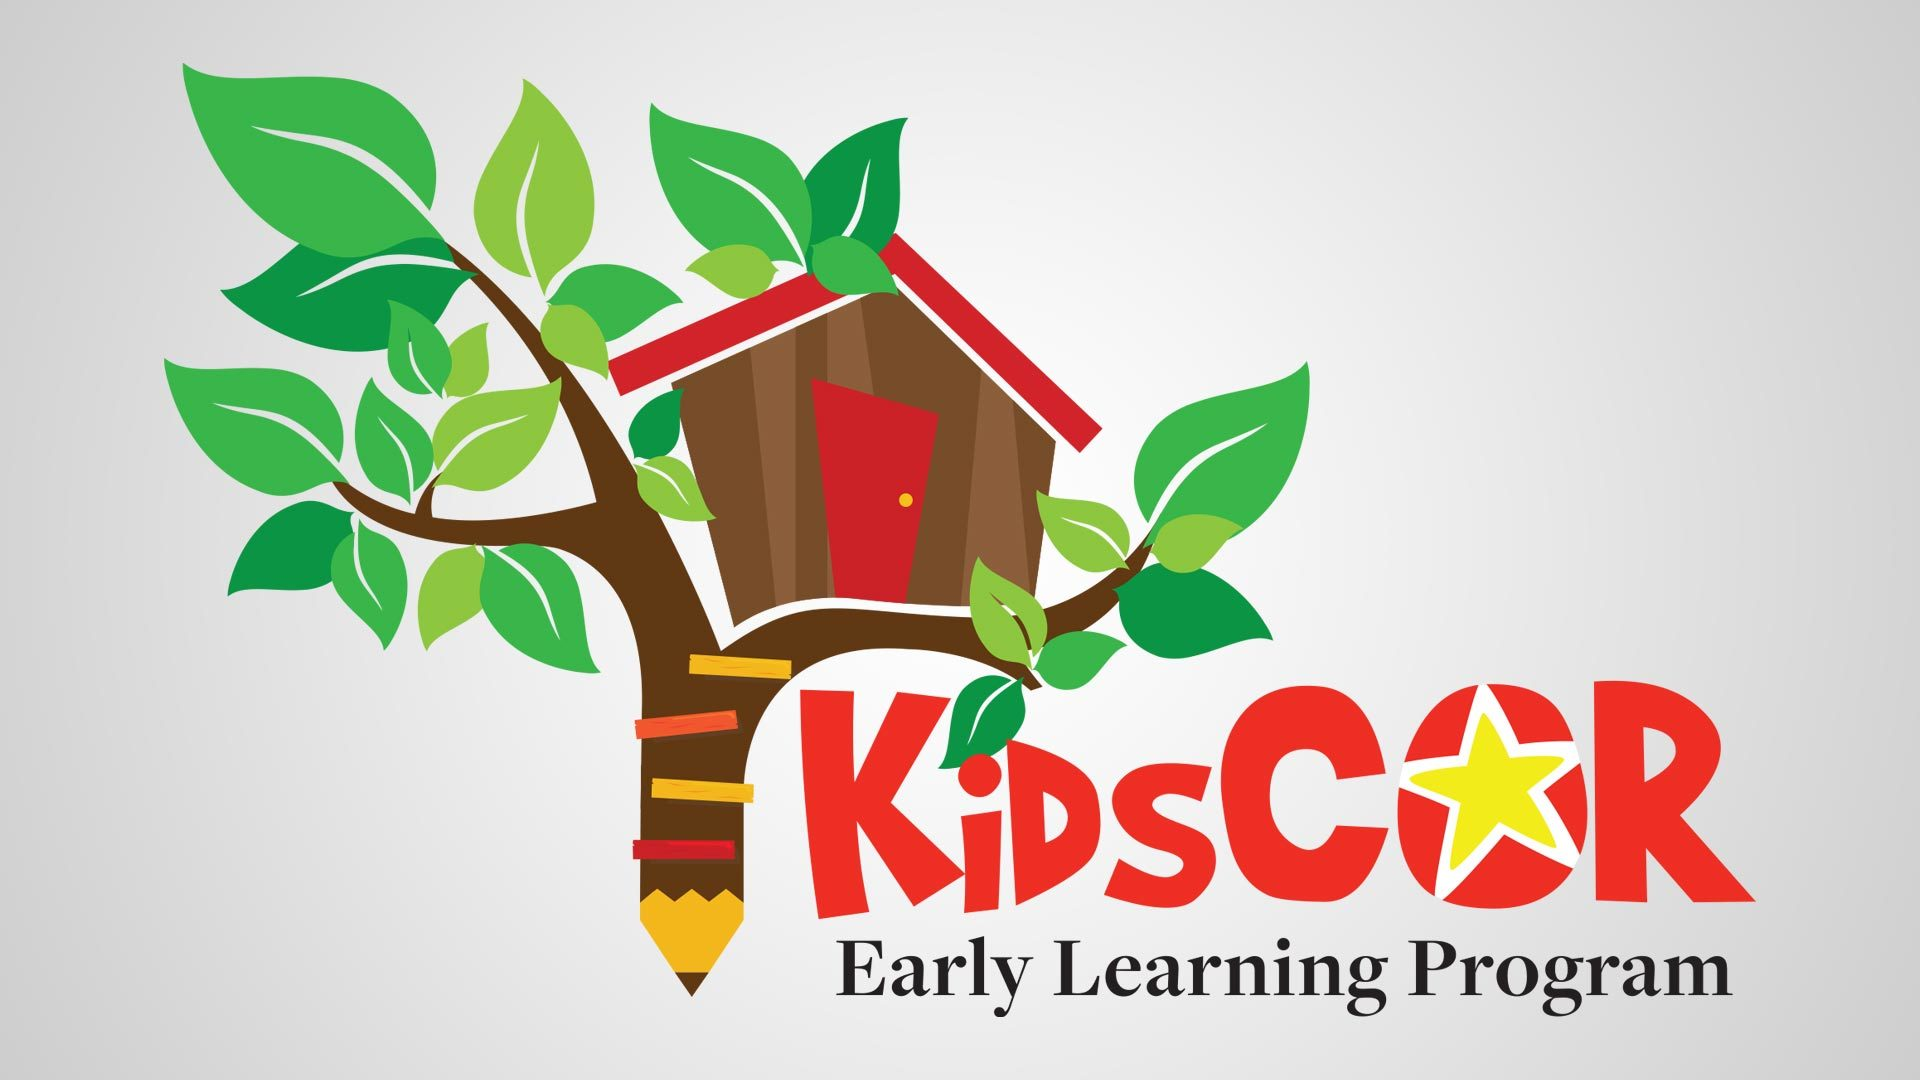 KiDSCOR Early Learning Program